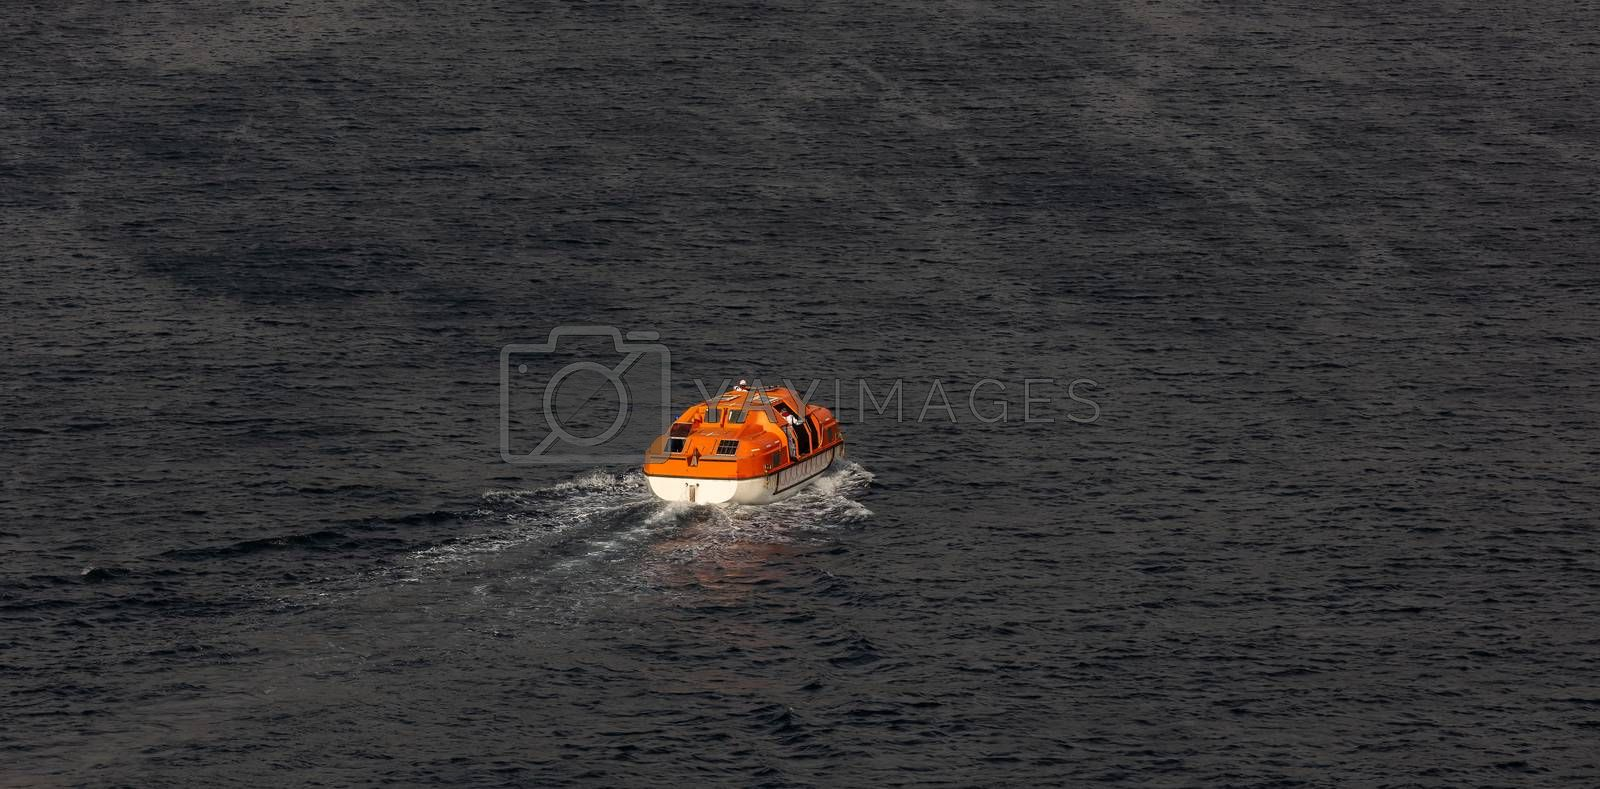 View of a single orange life boat with some seamen inside sailing at sea. Caribbean sea.